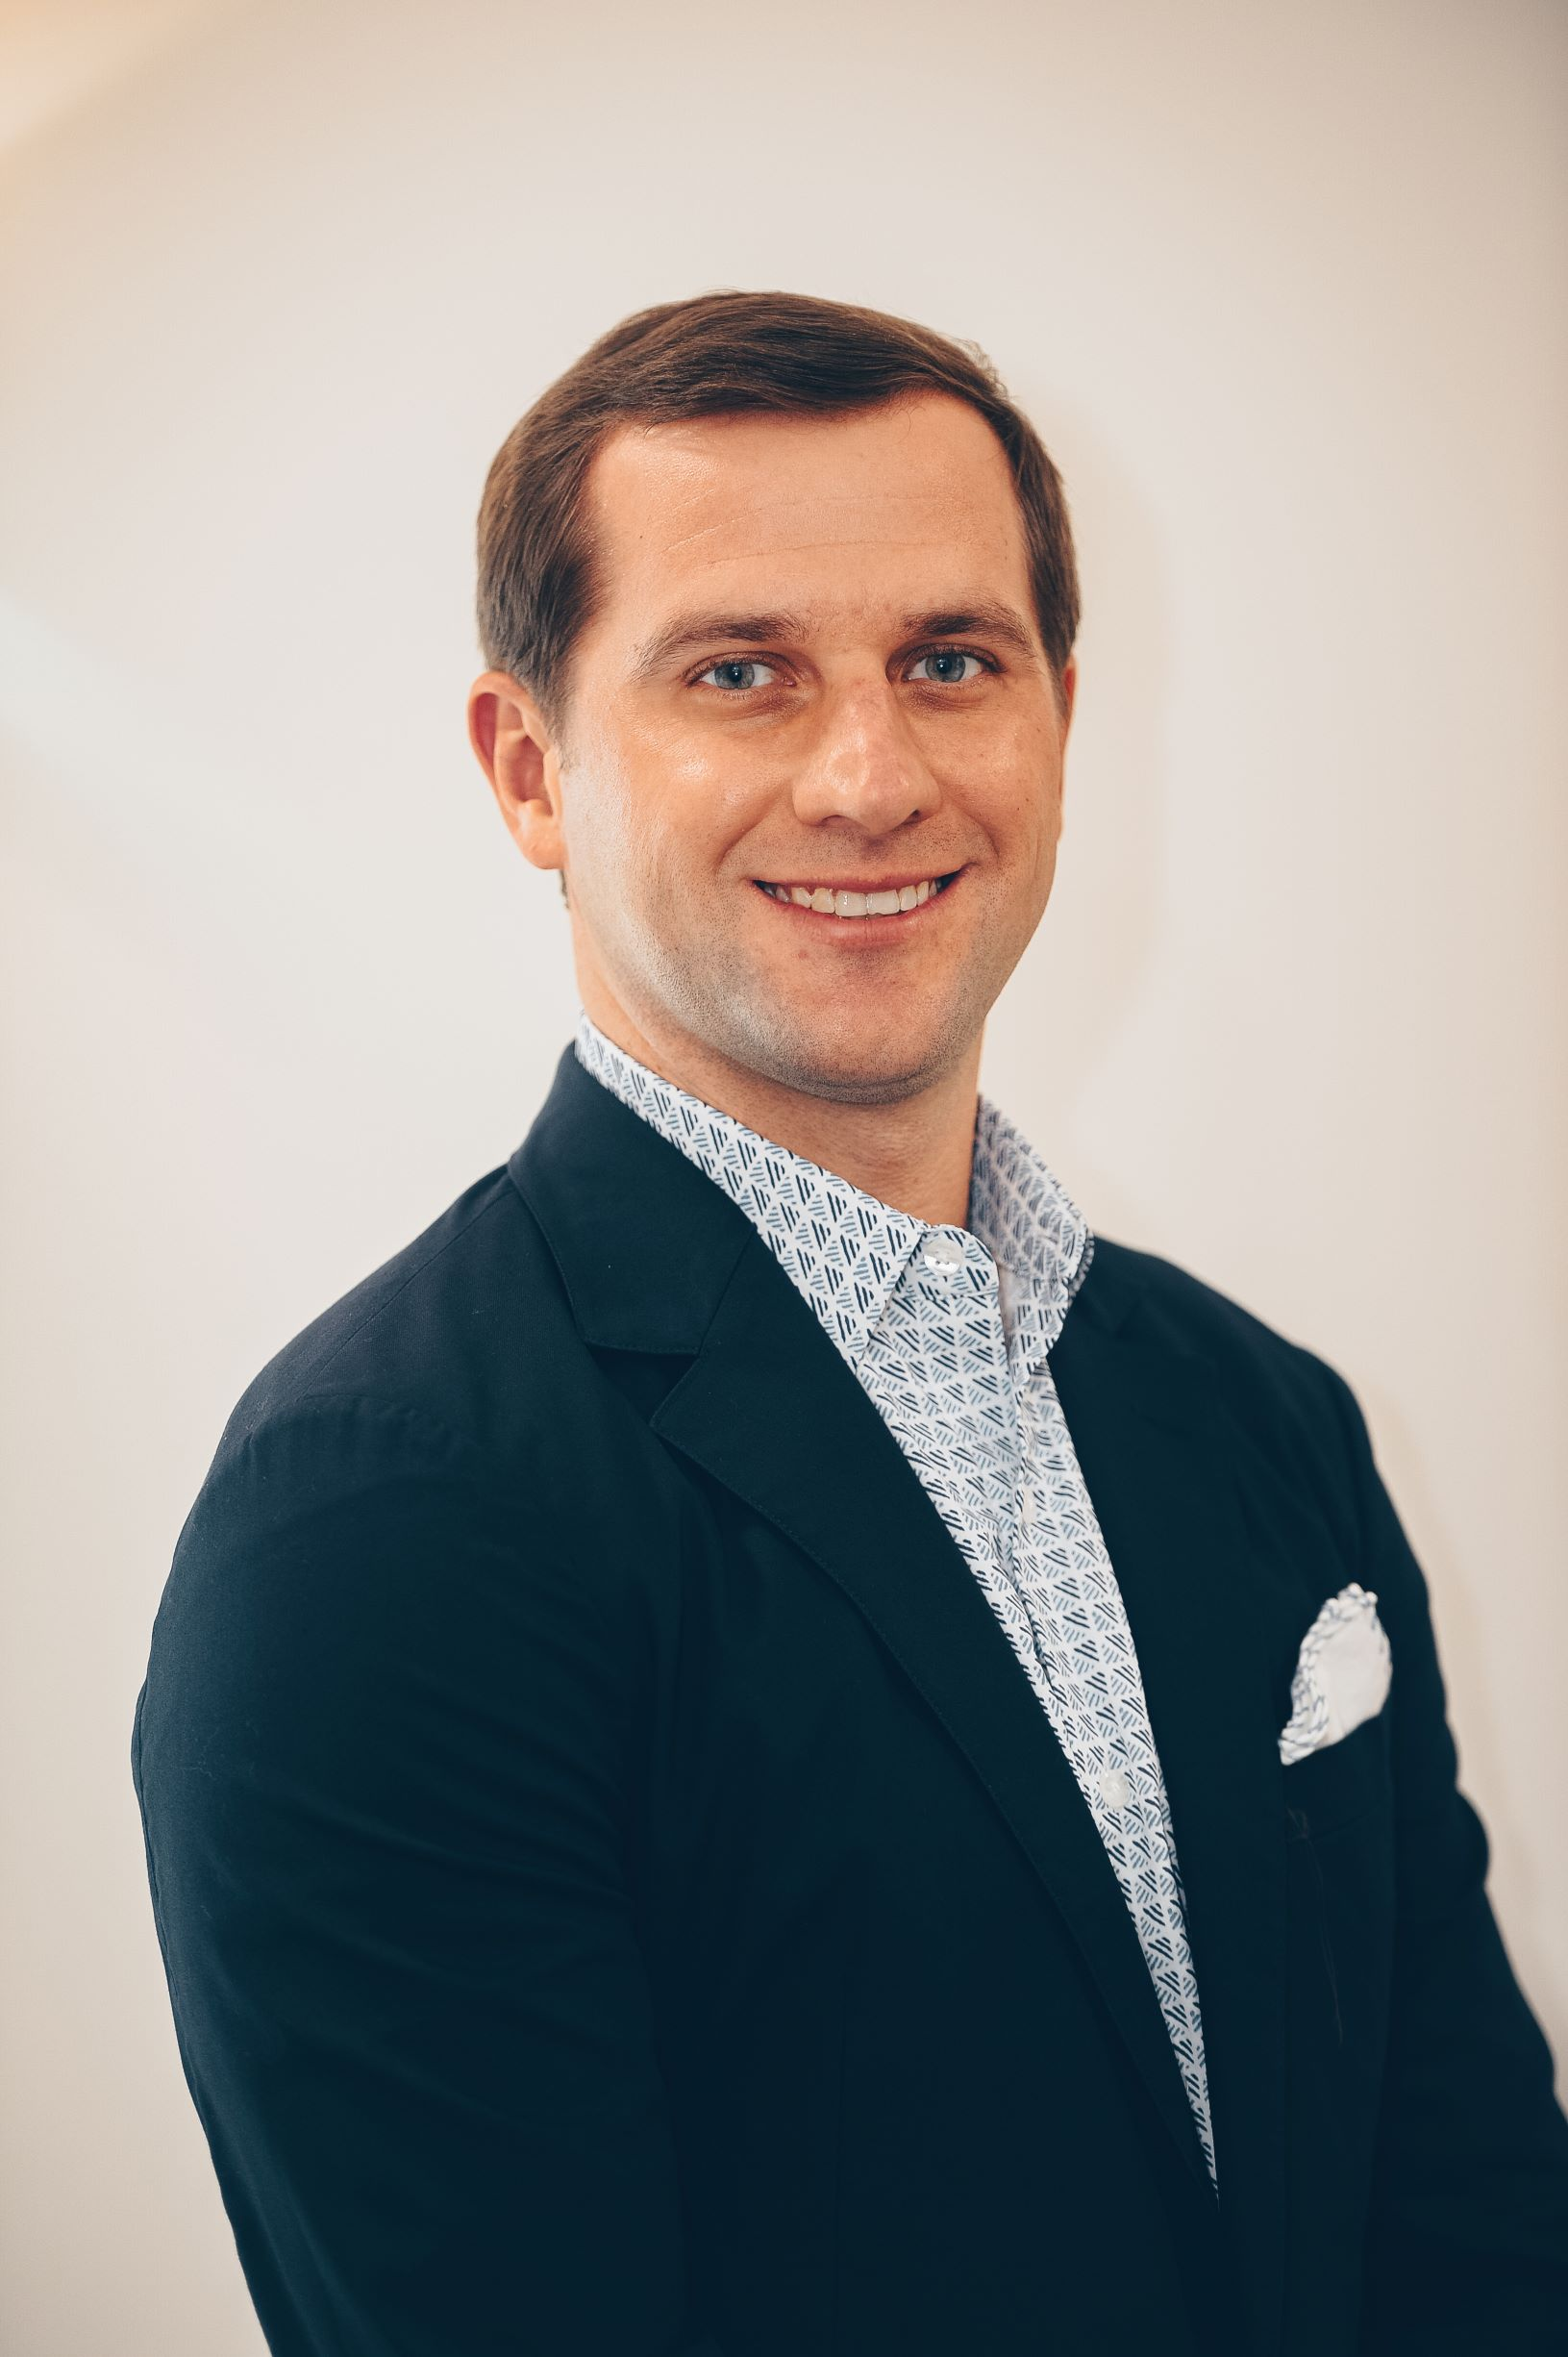 Matthew Marshall DMD MD Joins Marshall Surgery Center as Oral Surgeon